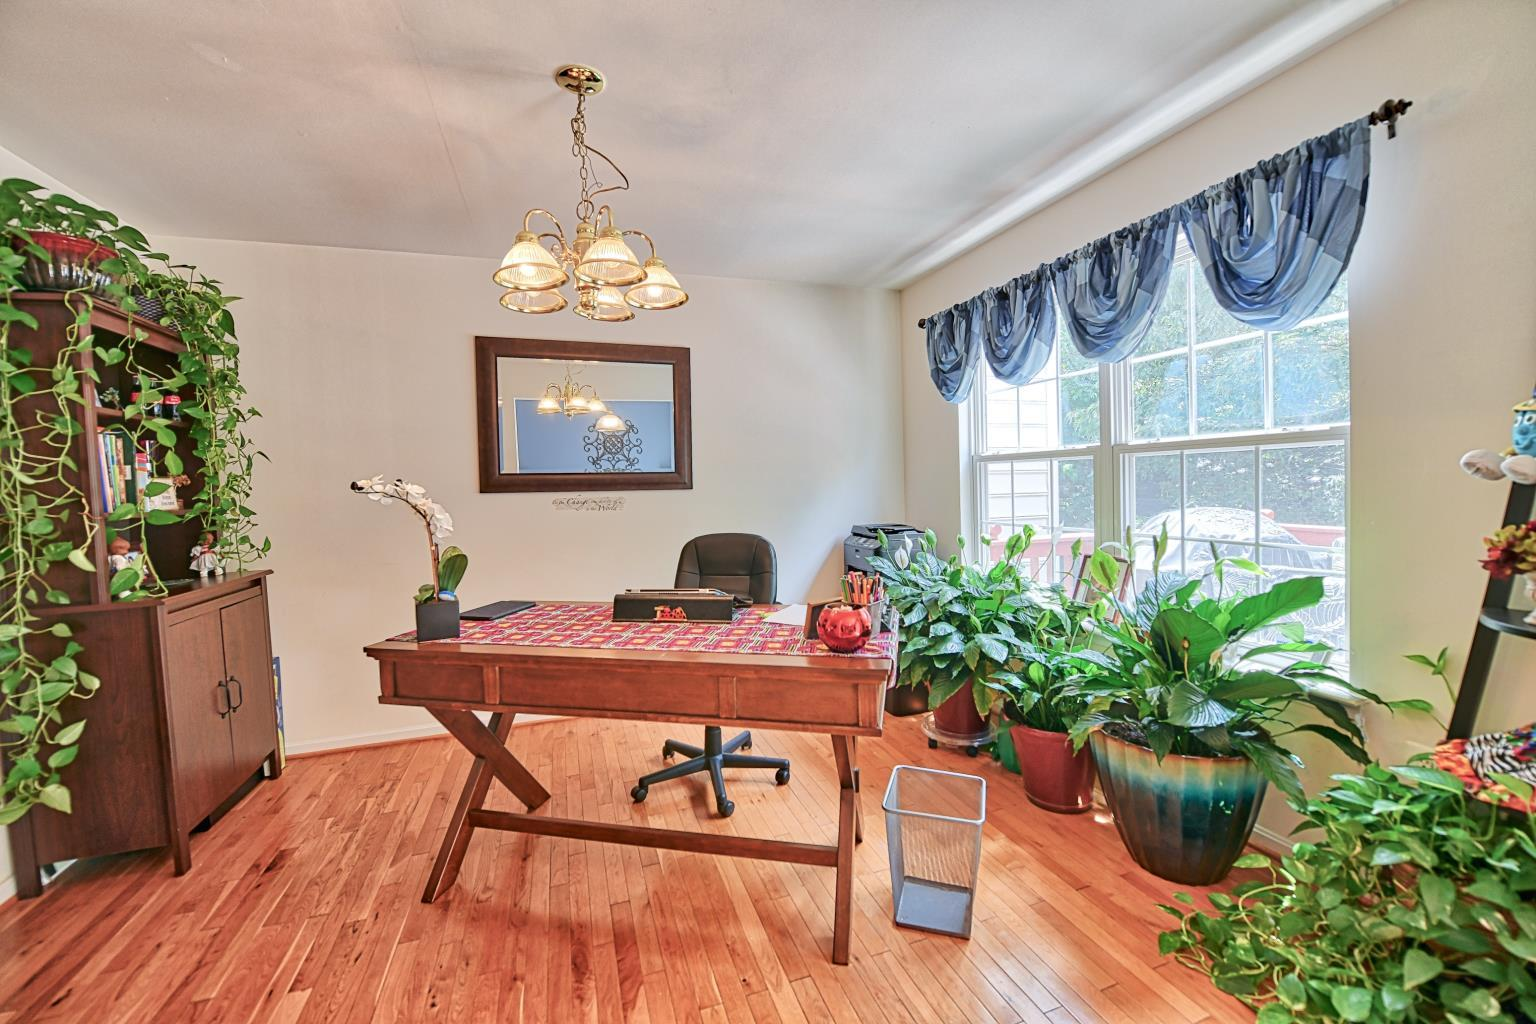 2733 Stanford Place in Waldorf MD - gorgeous dining room space!